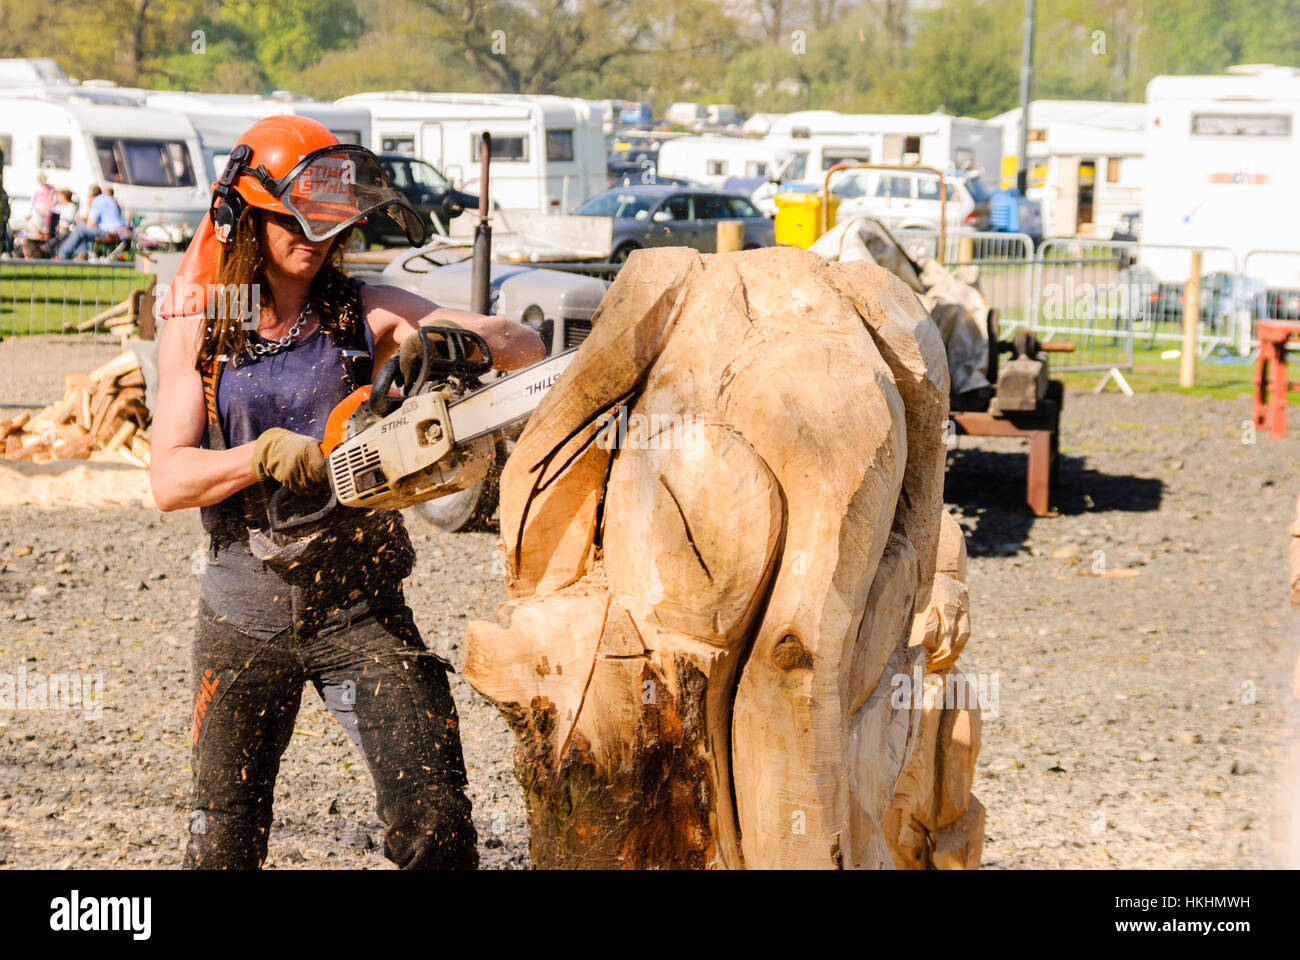 Woman uses a Stihl chainsaw to carve a tree trunk into the shape of an animal. - Stock Image